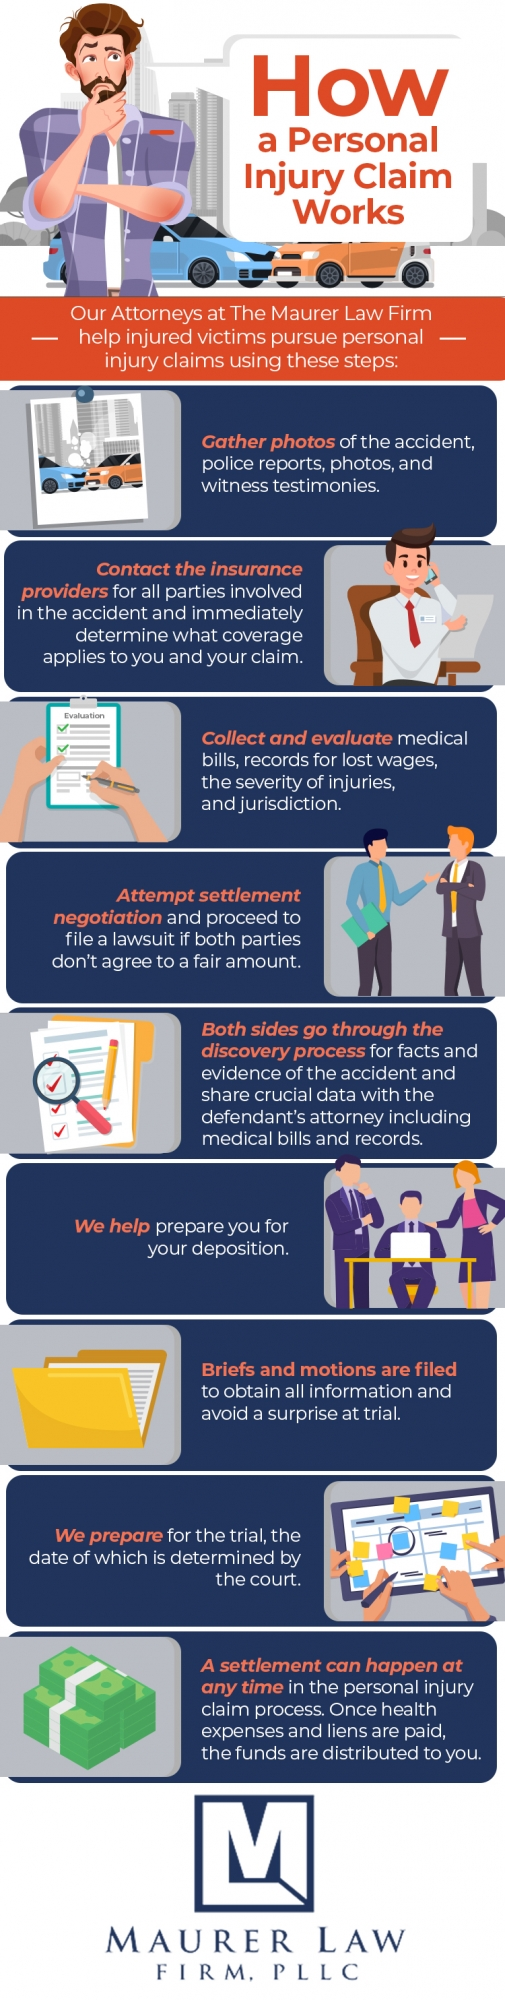 Infographic explains personal injury claims, settlements, and lawsuits